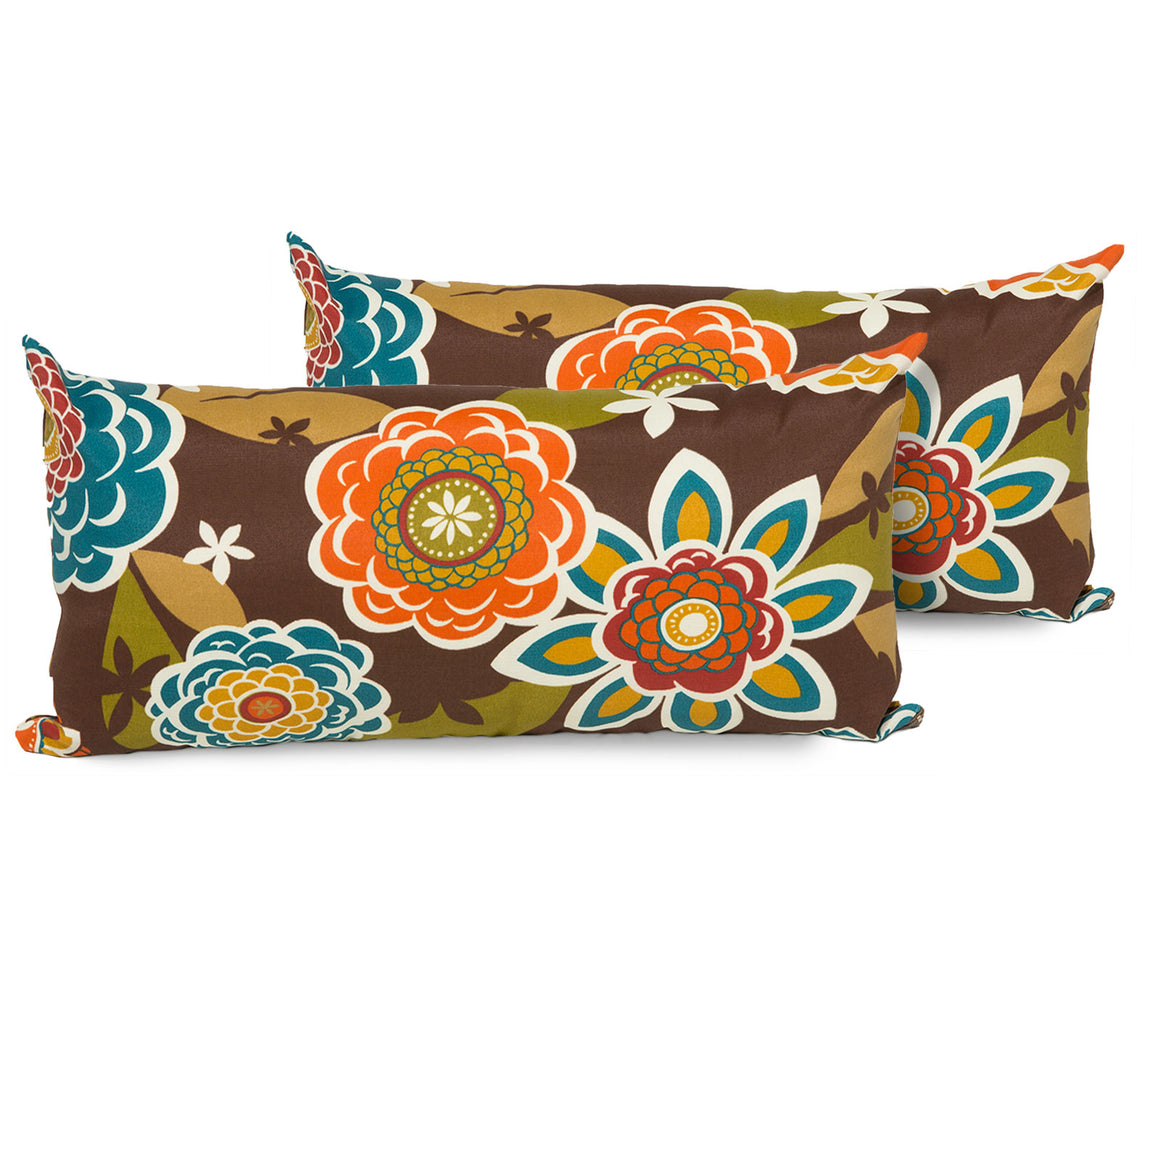 Retro Floral Outdoor Throw Pillows Rectangle Set of 2 , TK Classics- grayburd